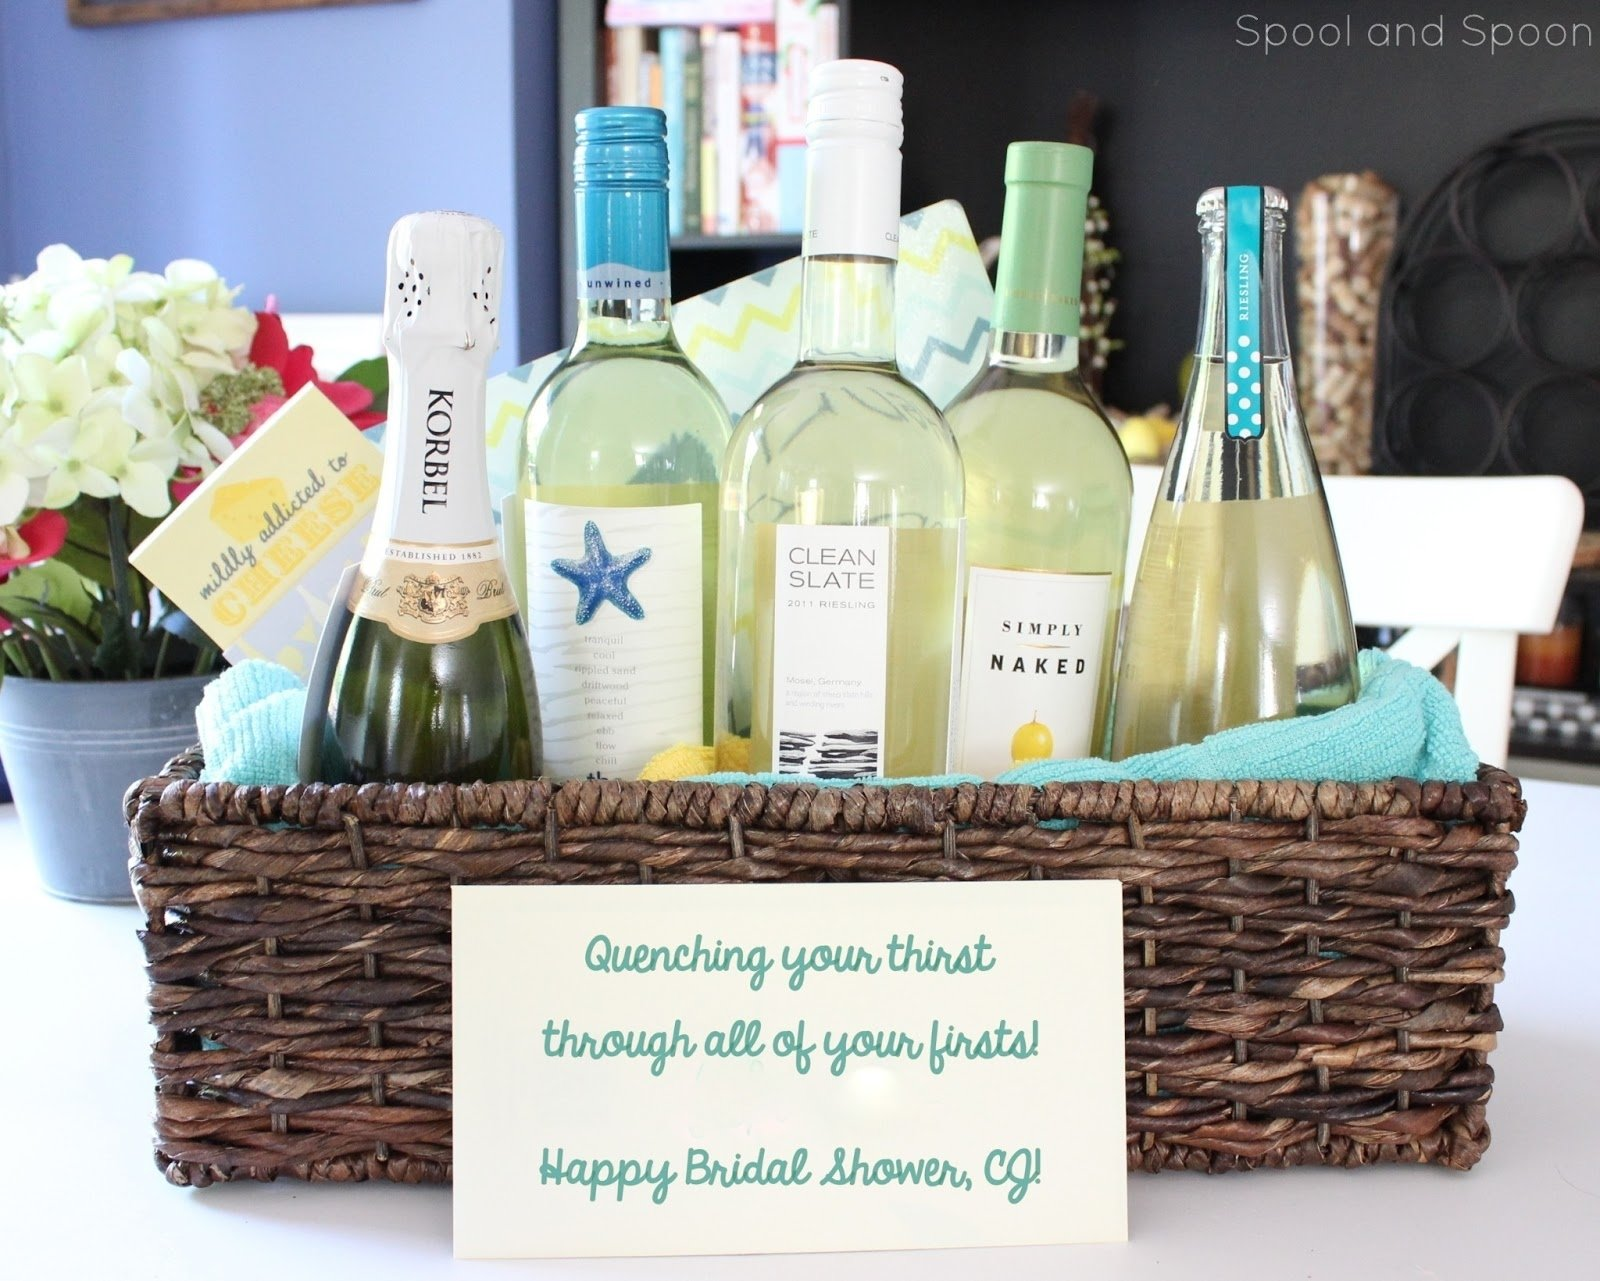 10 Awesome Wedding Shower Gift Basket Ideas spool and spoon all of your firsts wine gift basket with tags 2 2020